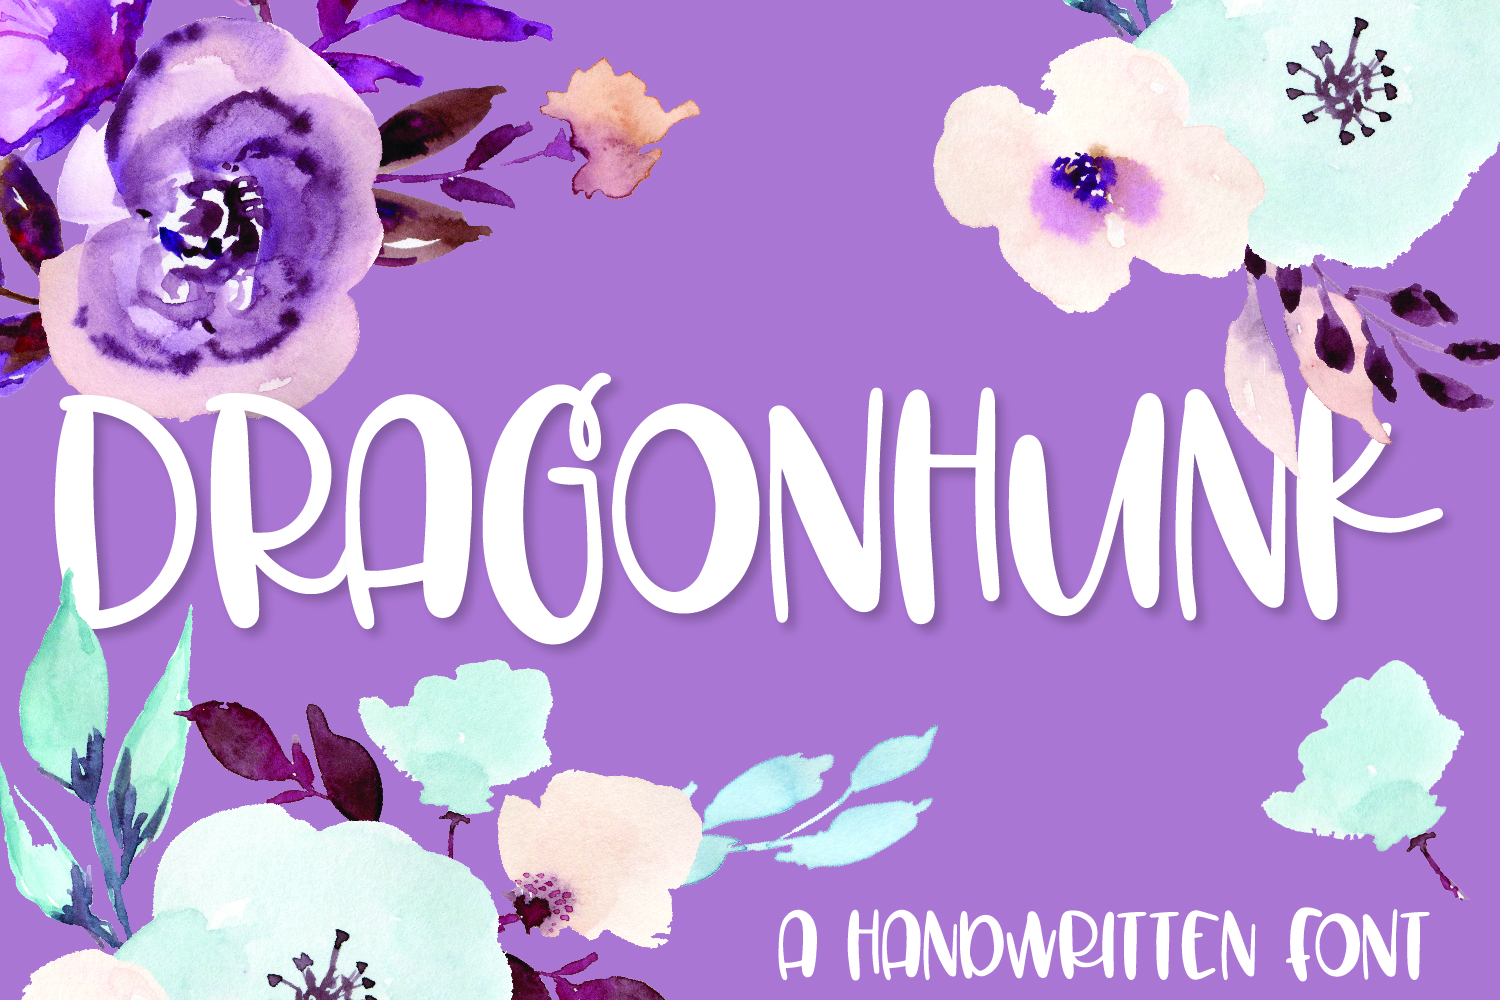 Dragonhunk - A Handwritten Font example image 1